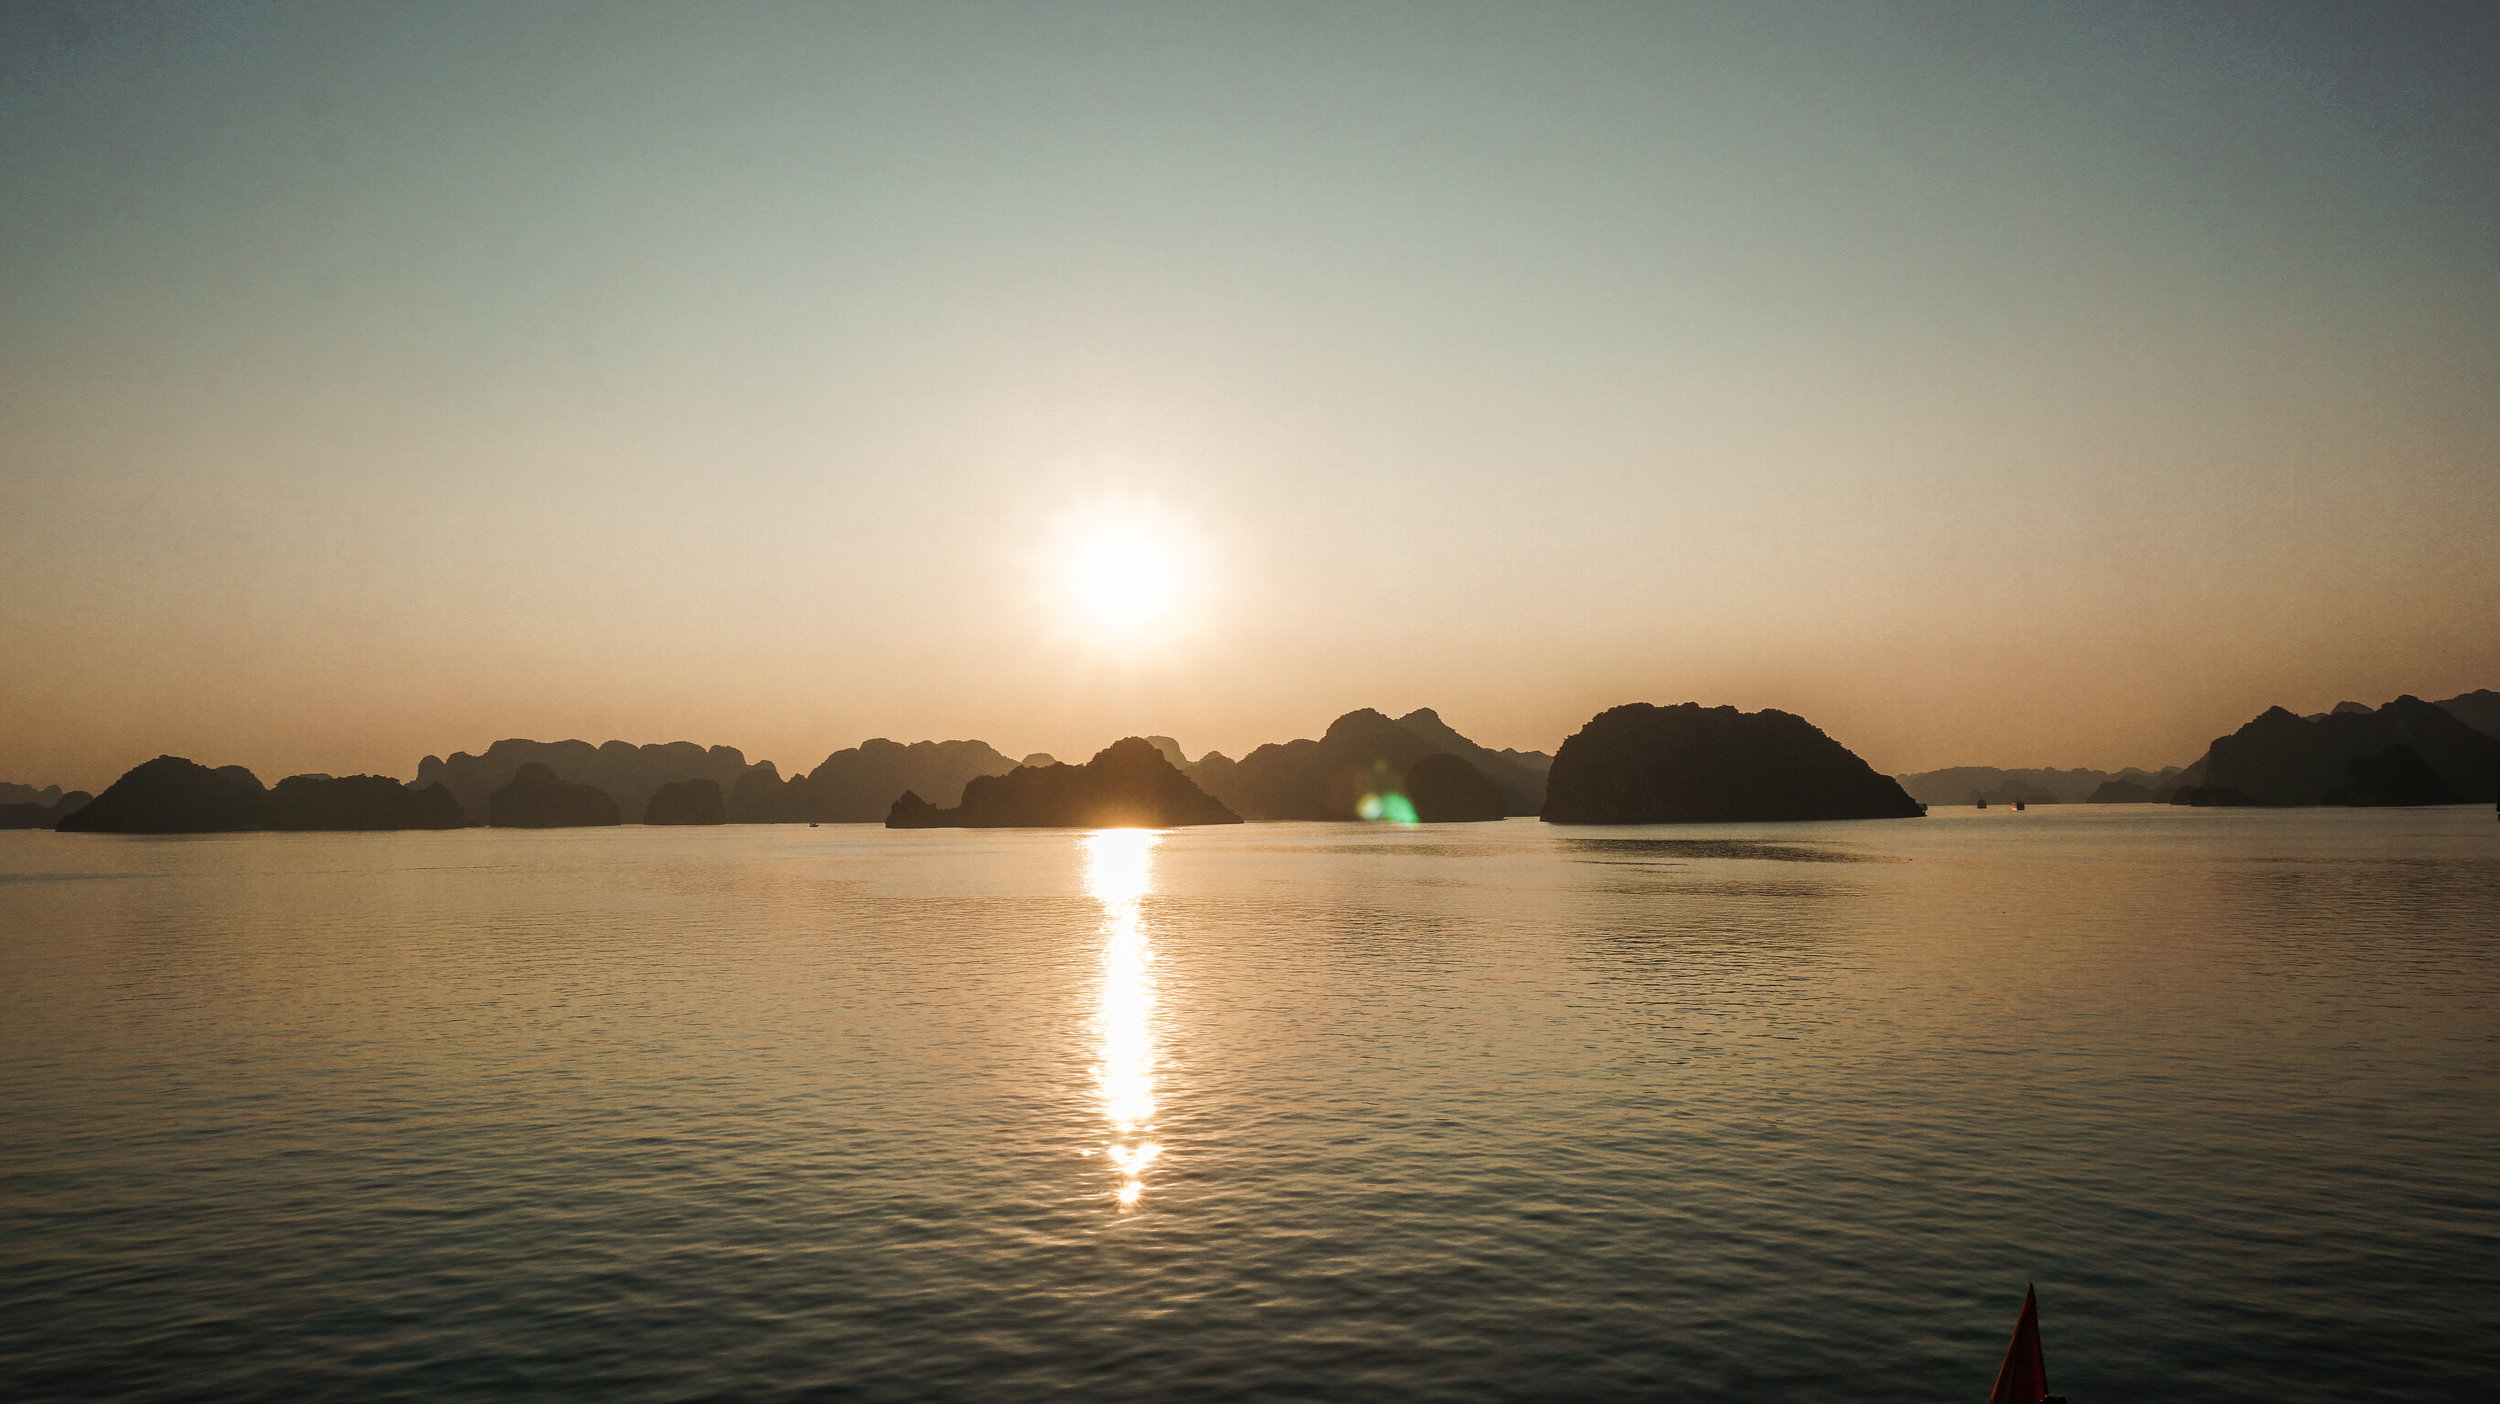 ha-long-bay-sunrise-2019.jpg